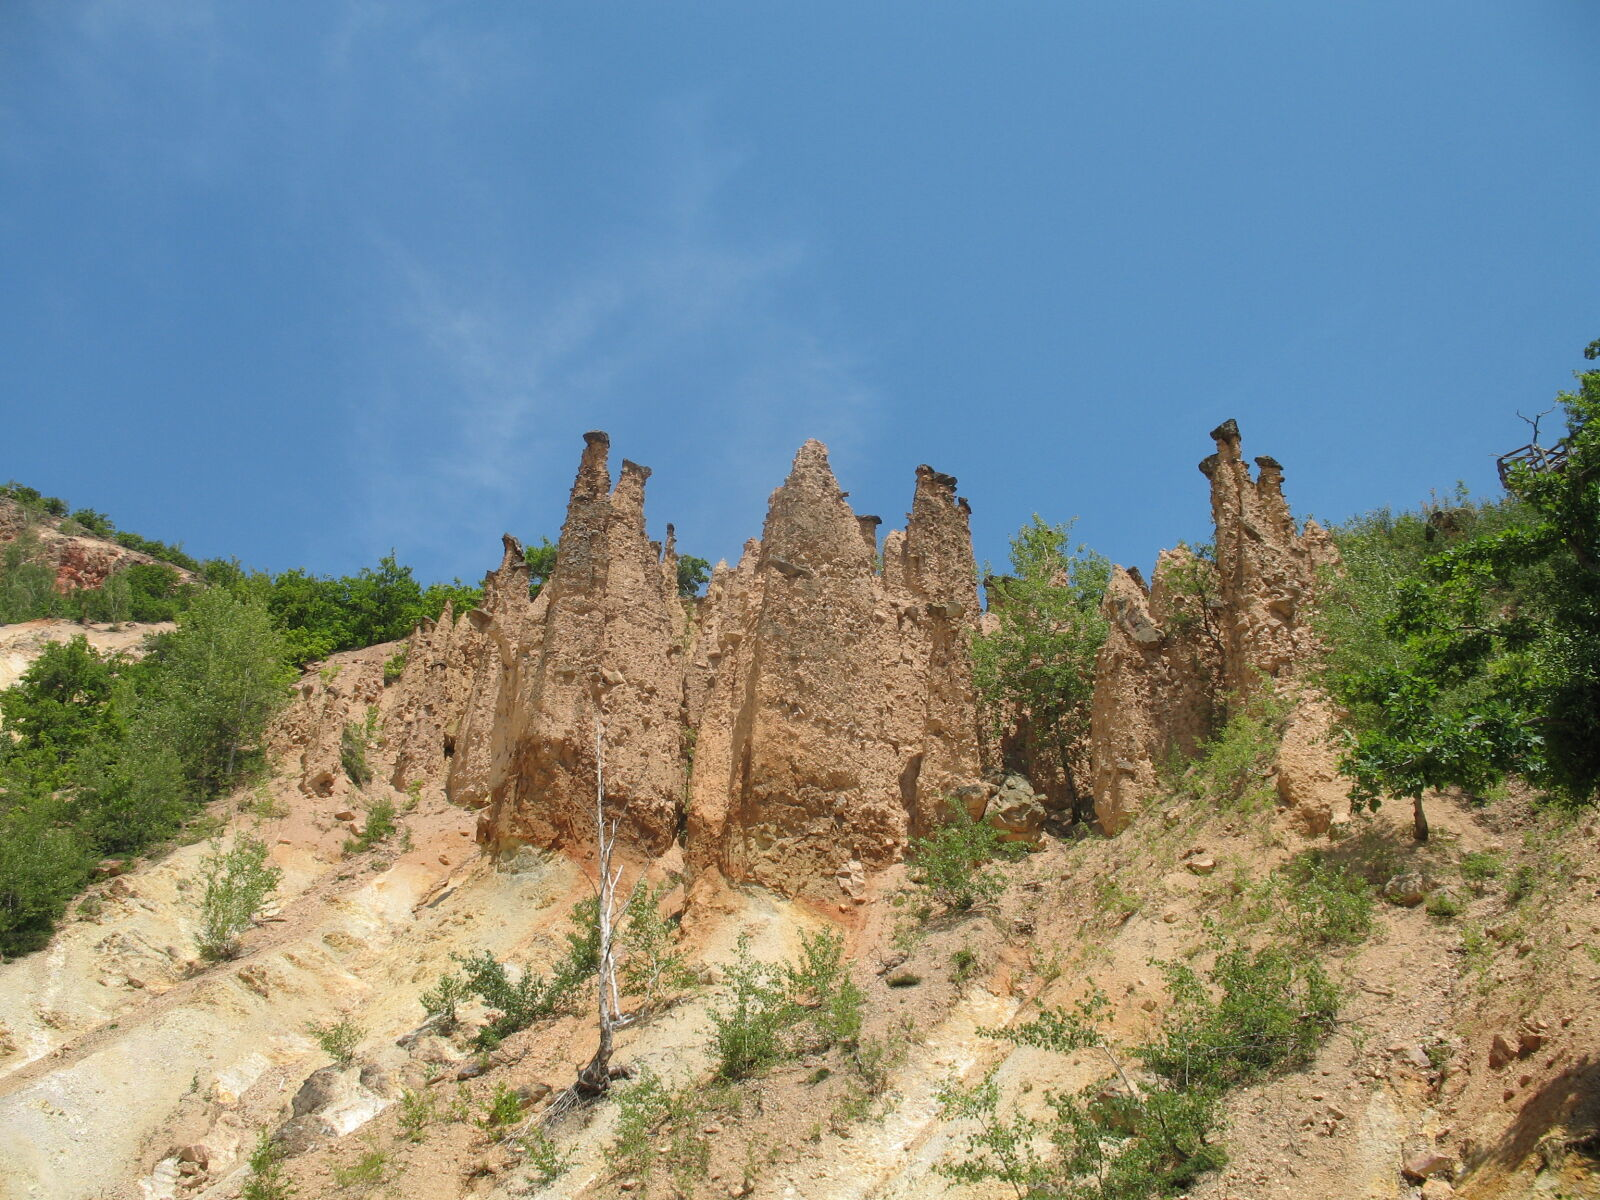 """Canon POWERSHOT A620 sample photo. """"Devil, s, town, serbia"""" photography"""